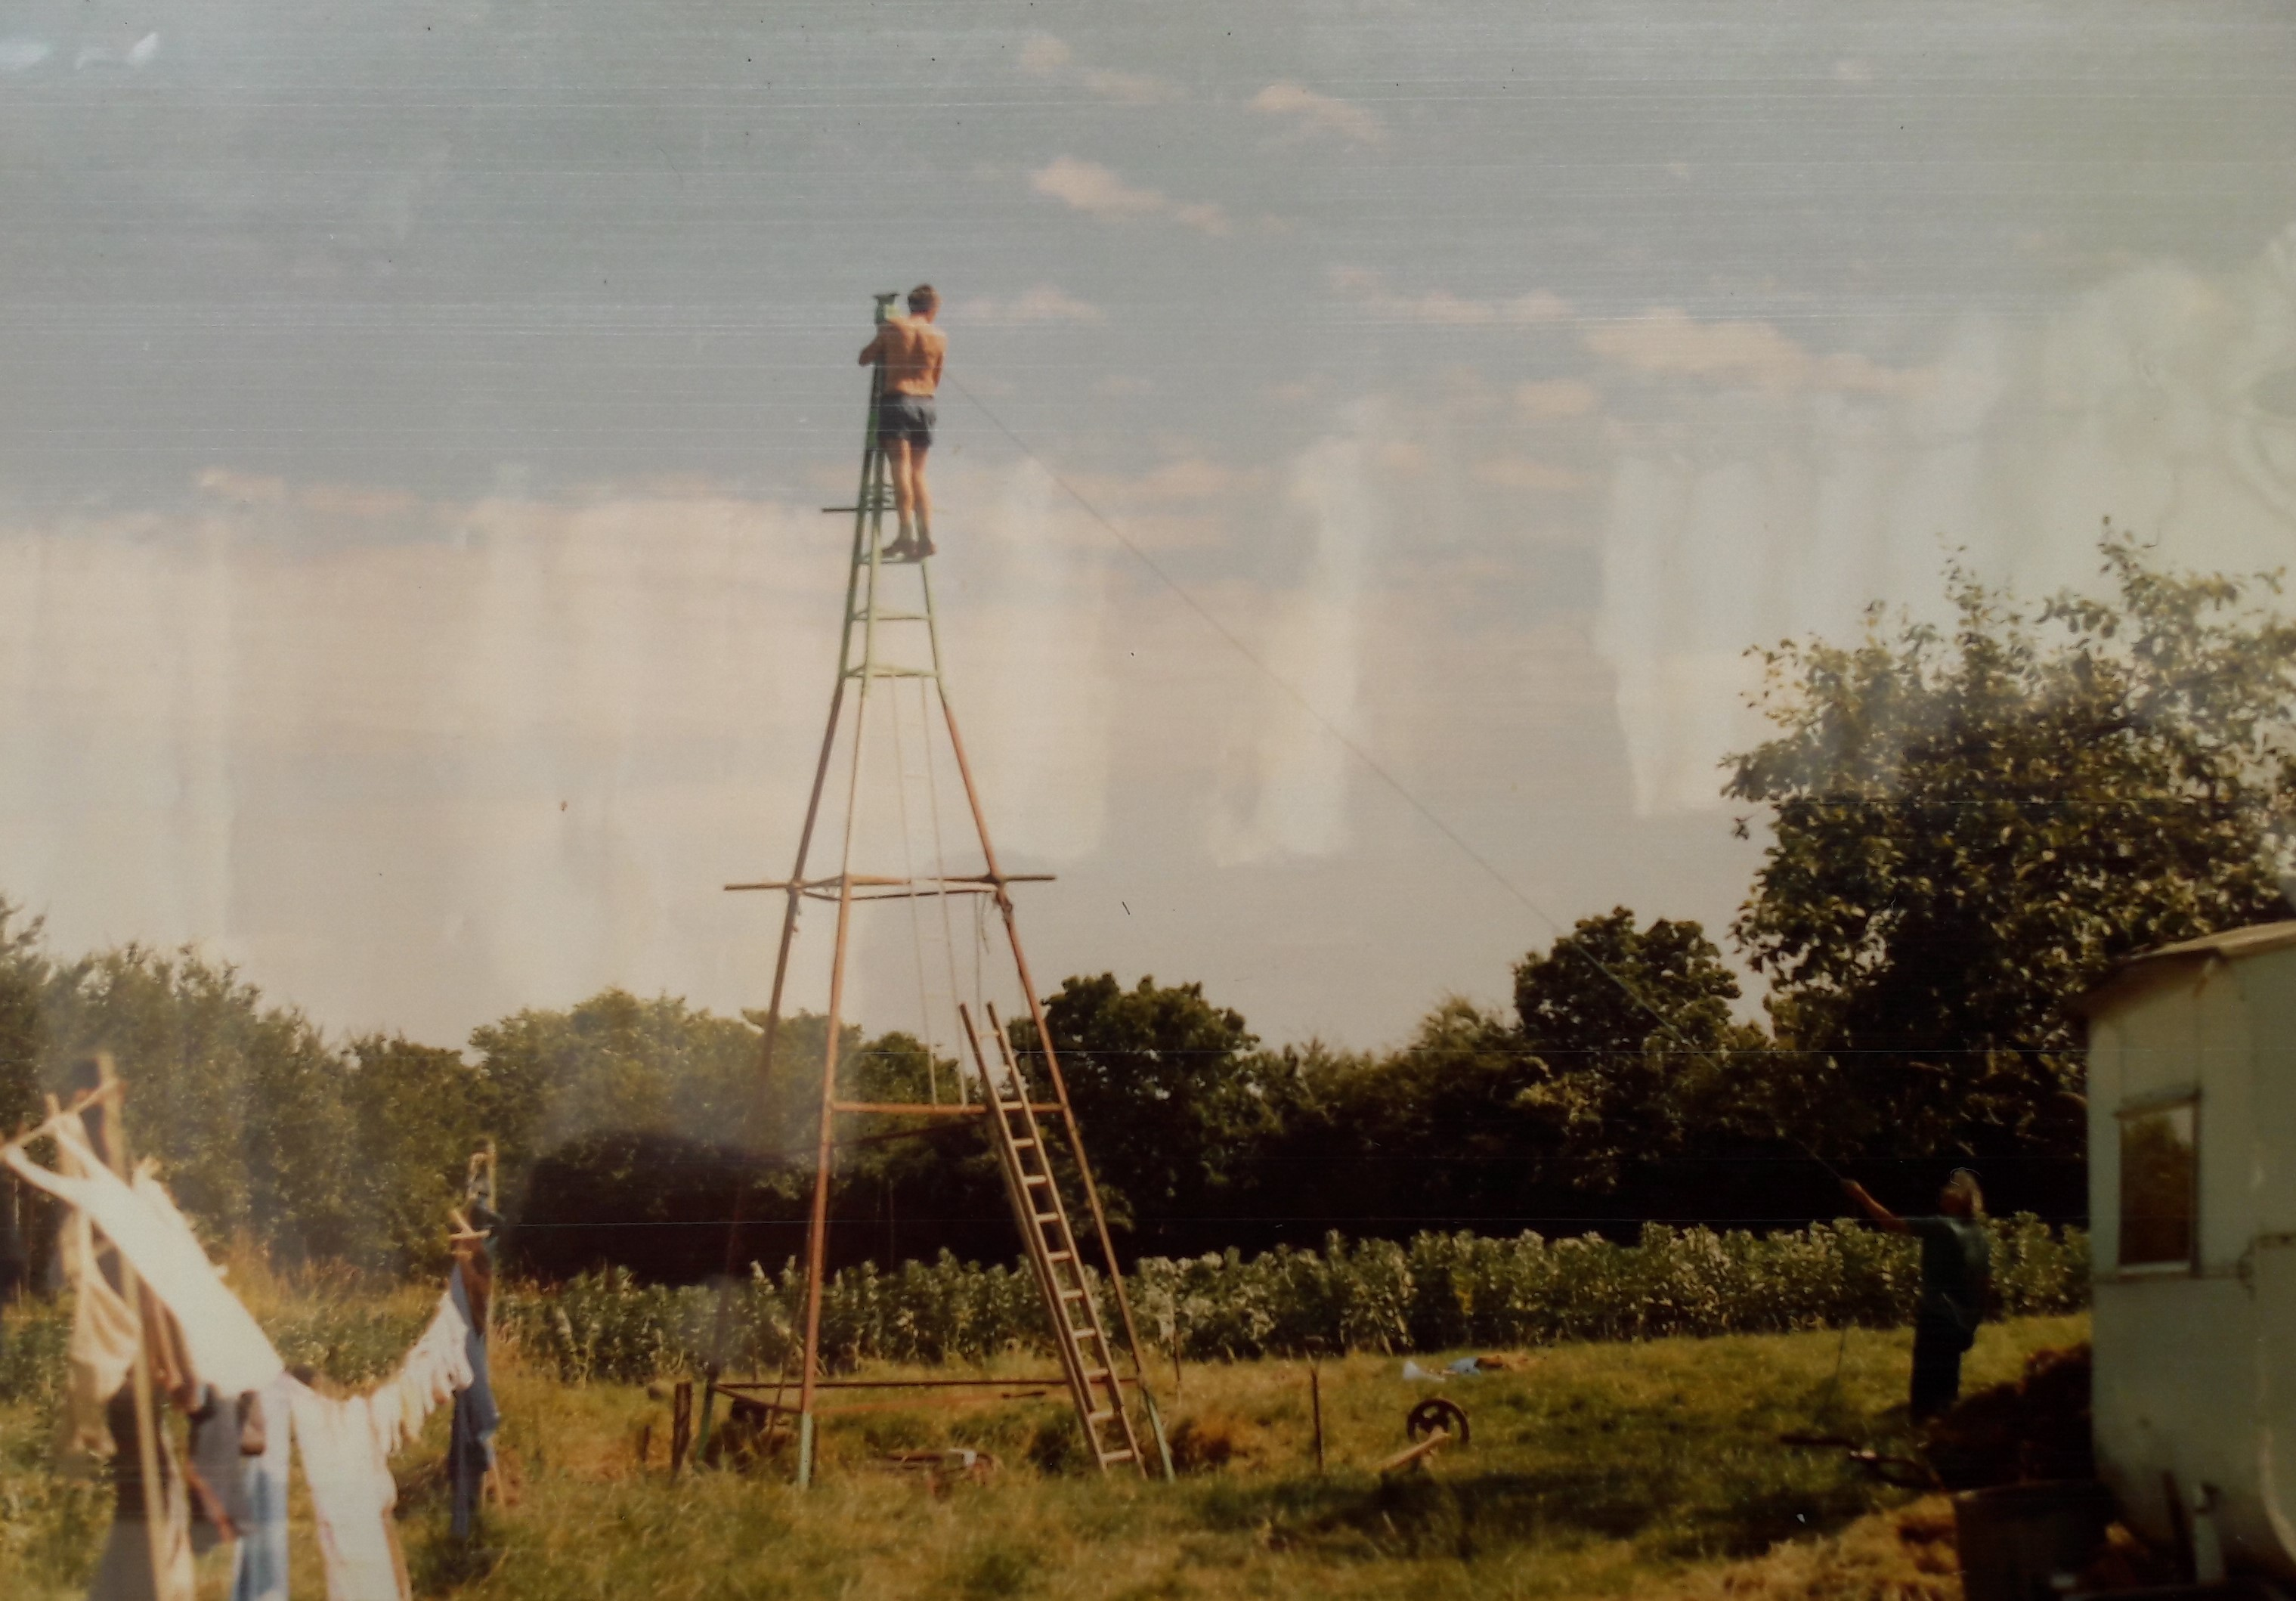 Building the windmill